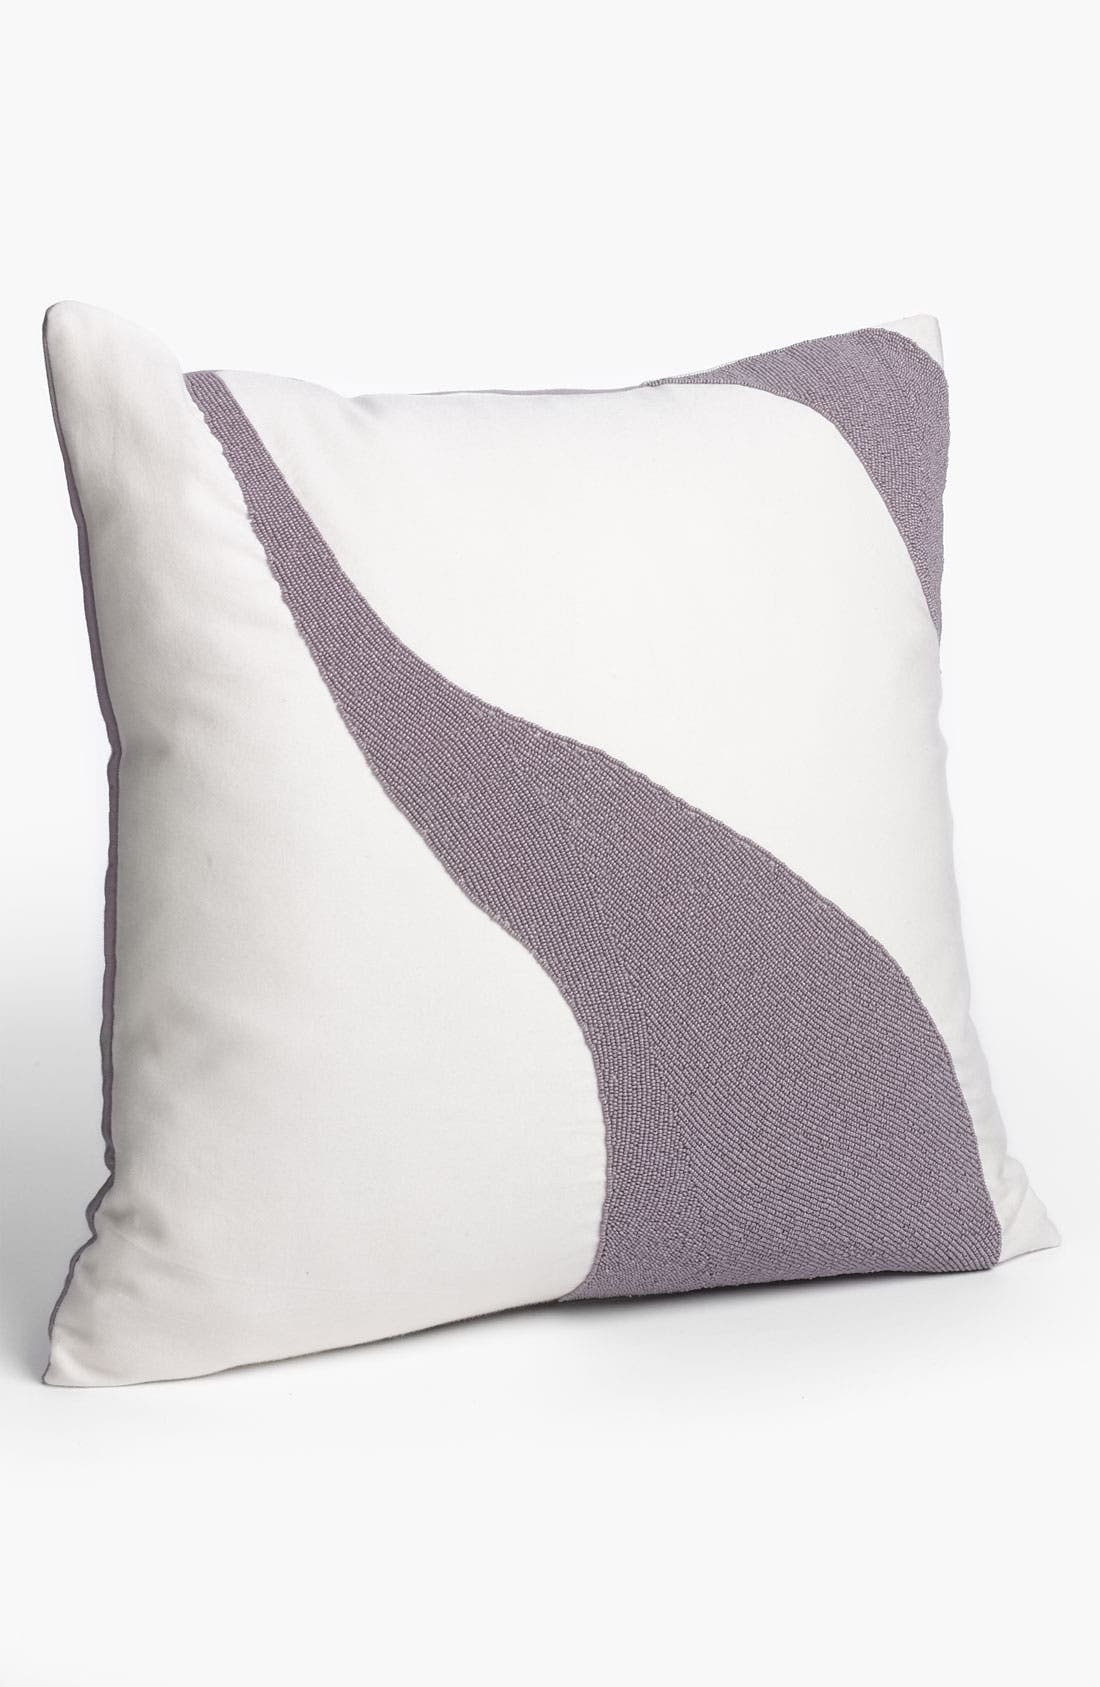 Main Image - Diane von Furstenberg 'Beaded Wave' Pillow